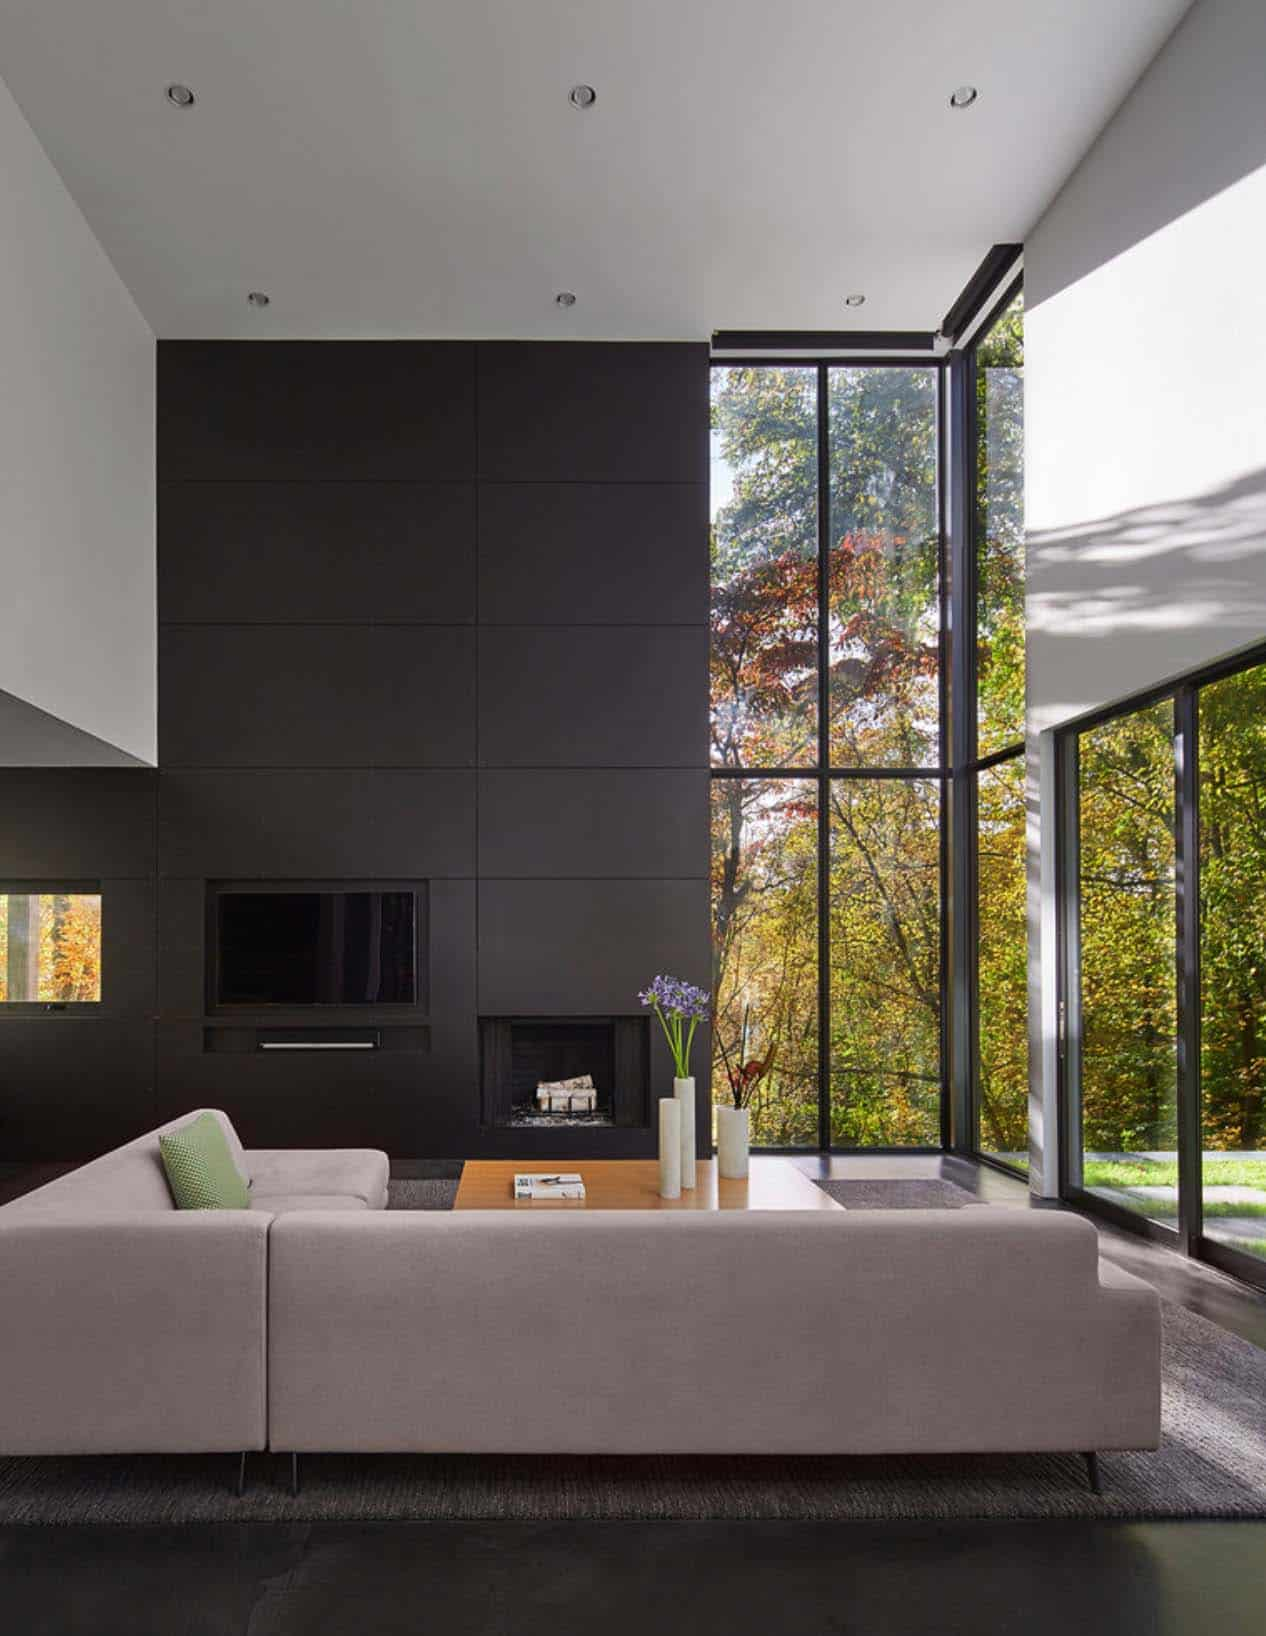 Architecture Modern Home-Robert Gurney Architect-15-1 Kindesign